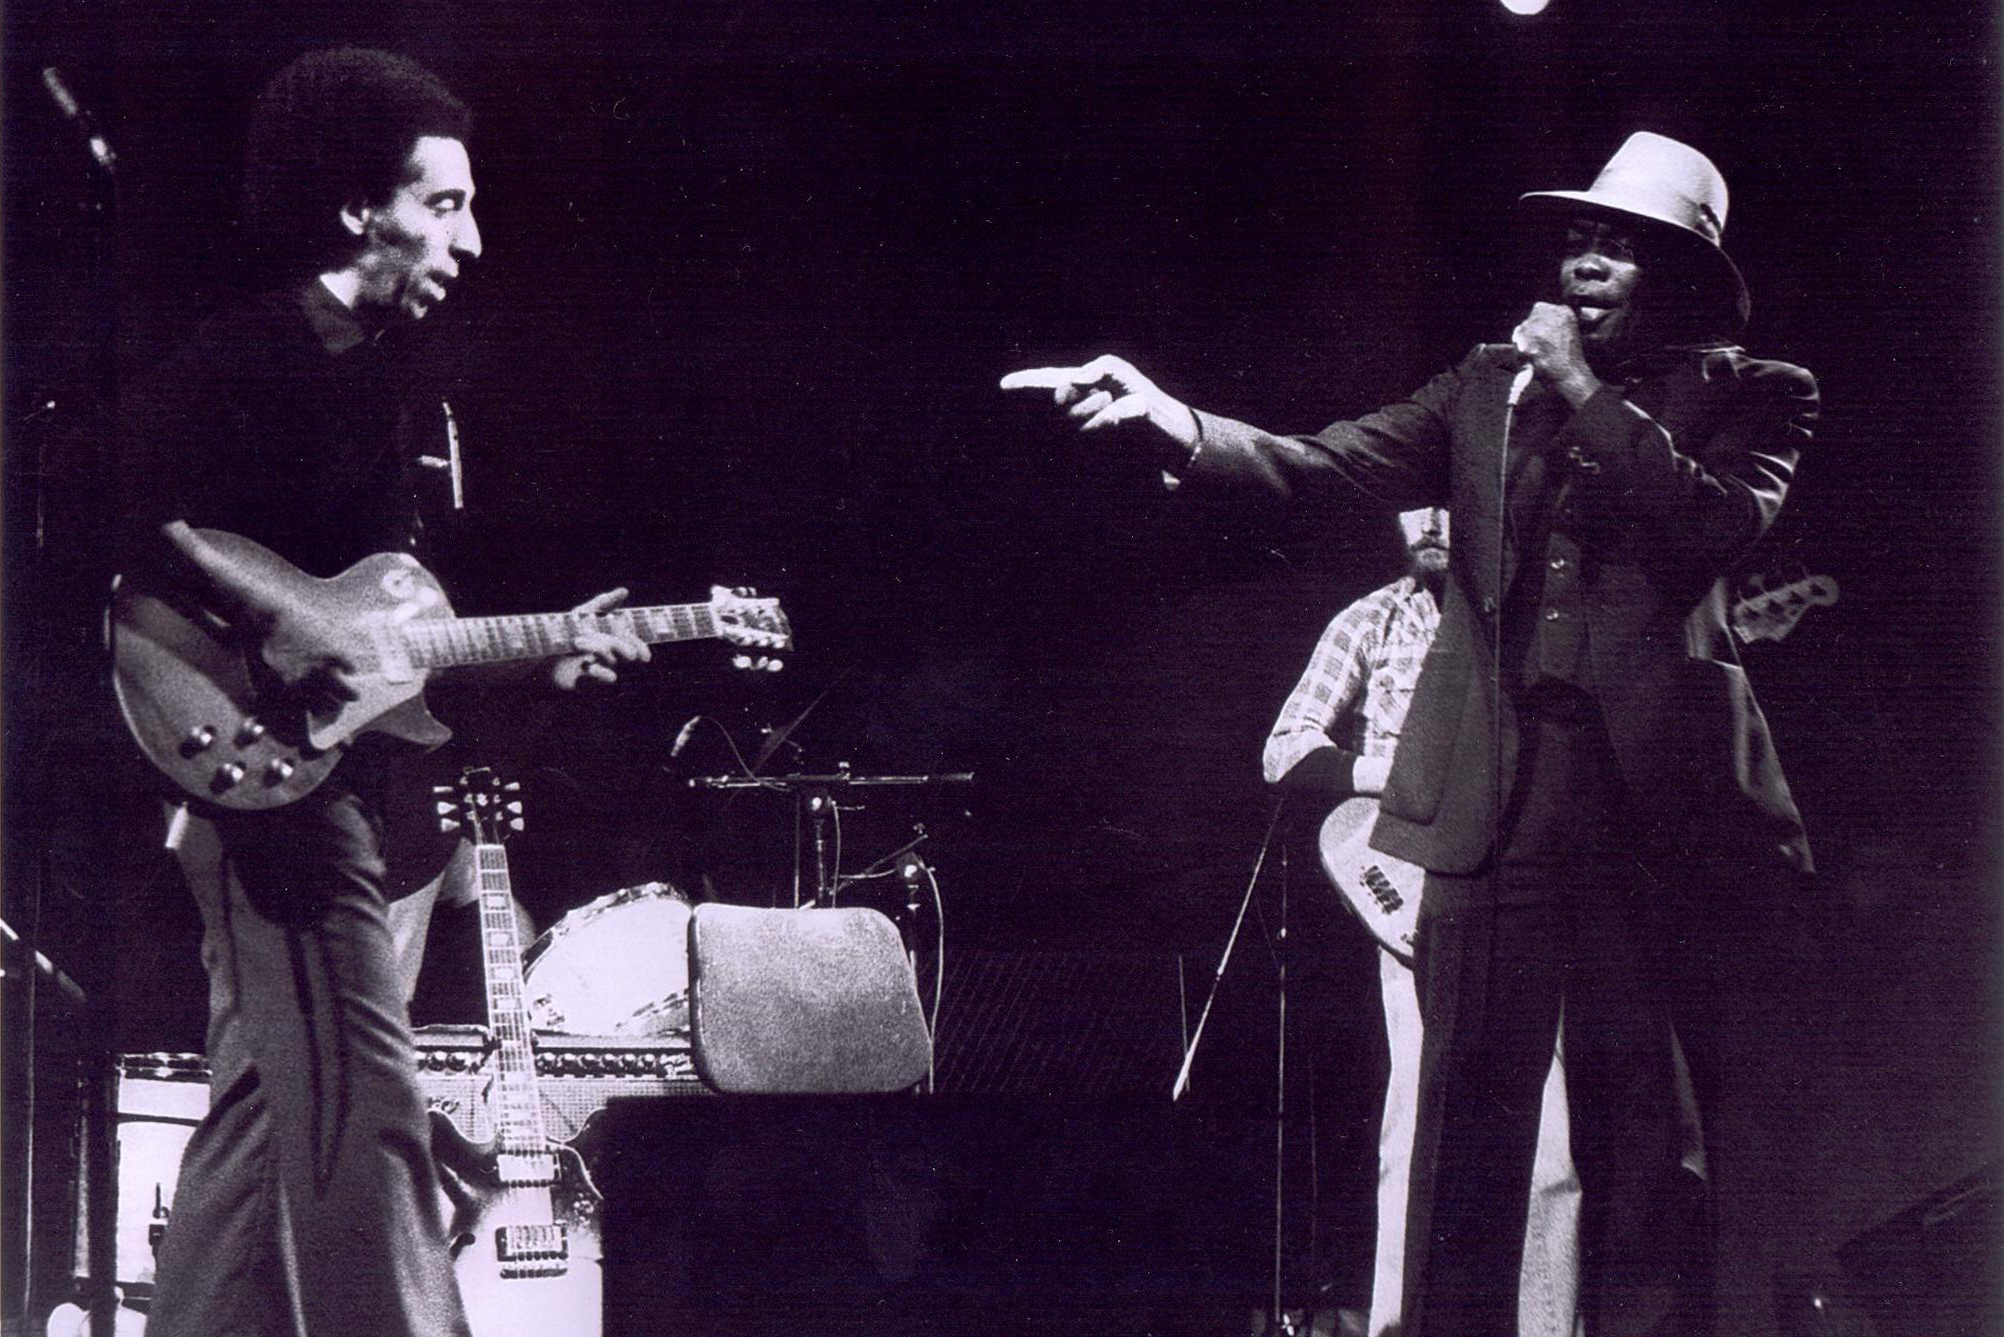 John García with John Lee Hooker